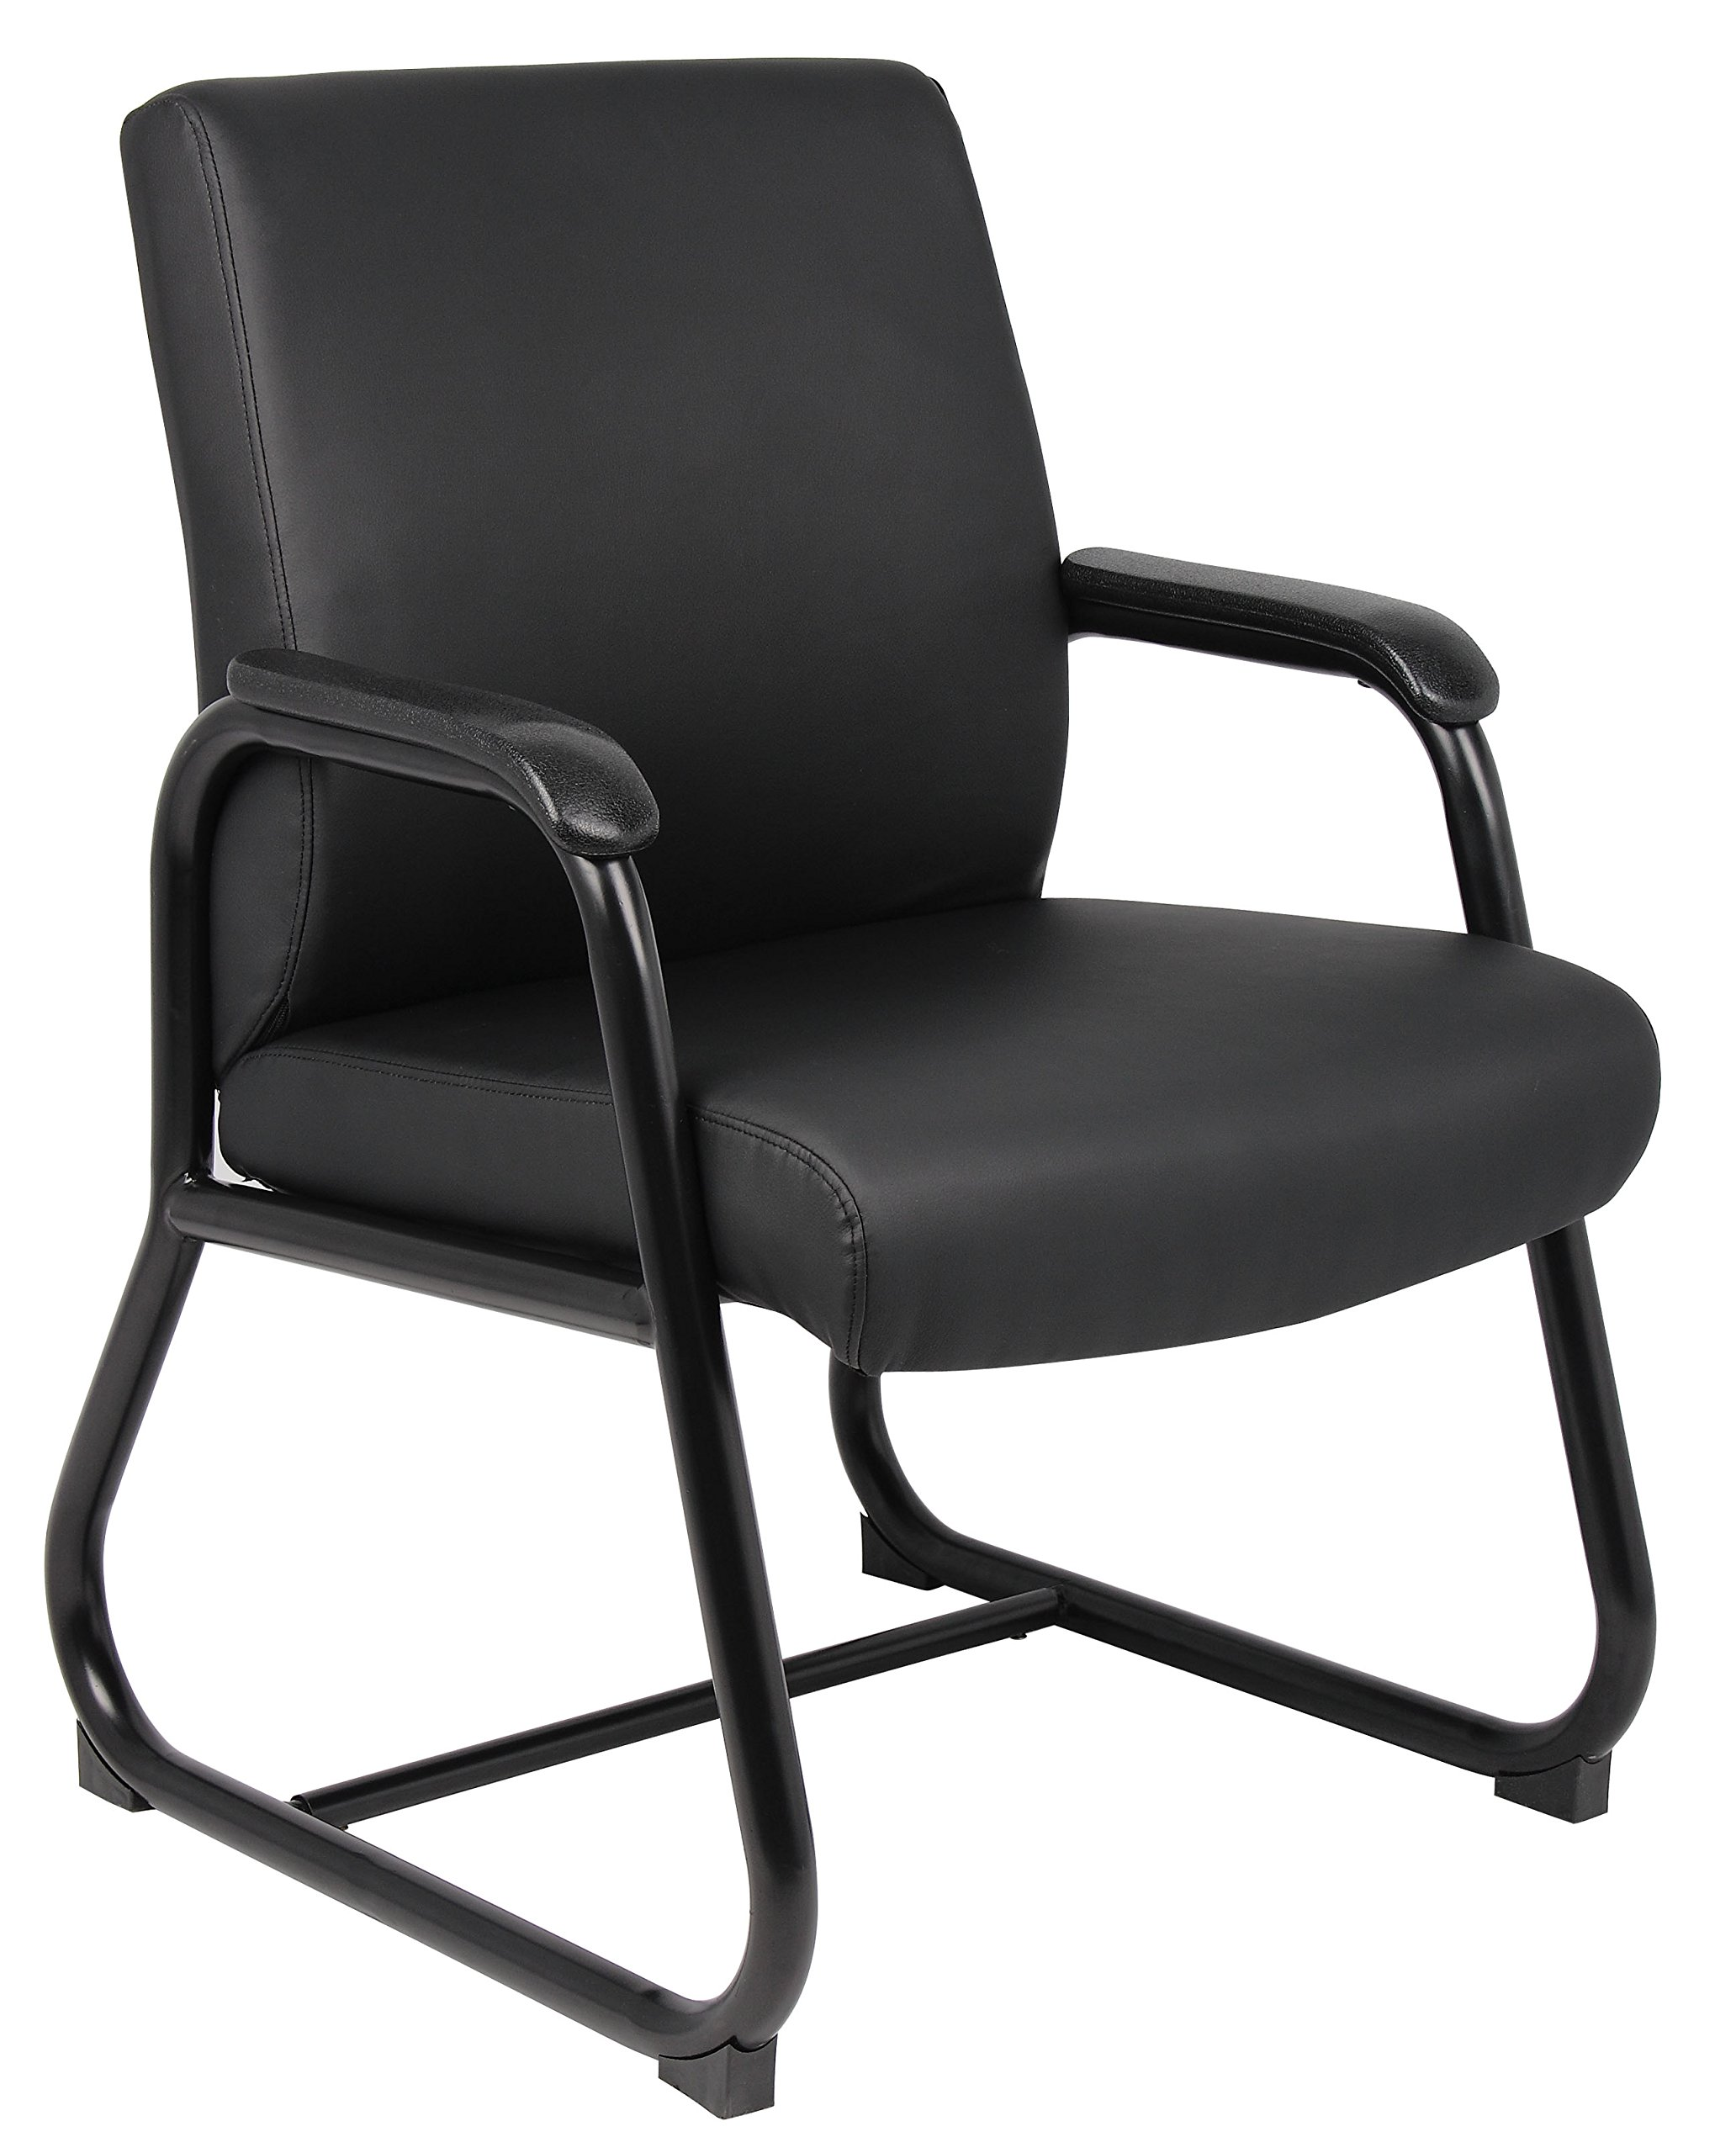 Boss Office Products B709 Heavy Duty Caressoft Guest Chair in Black by Boss Office Products (Image #1)